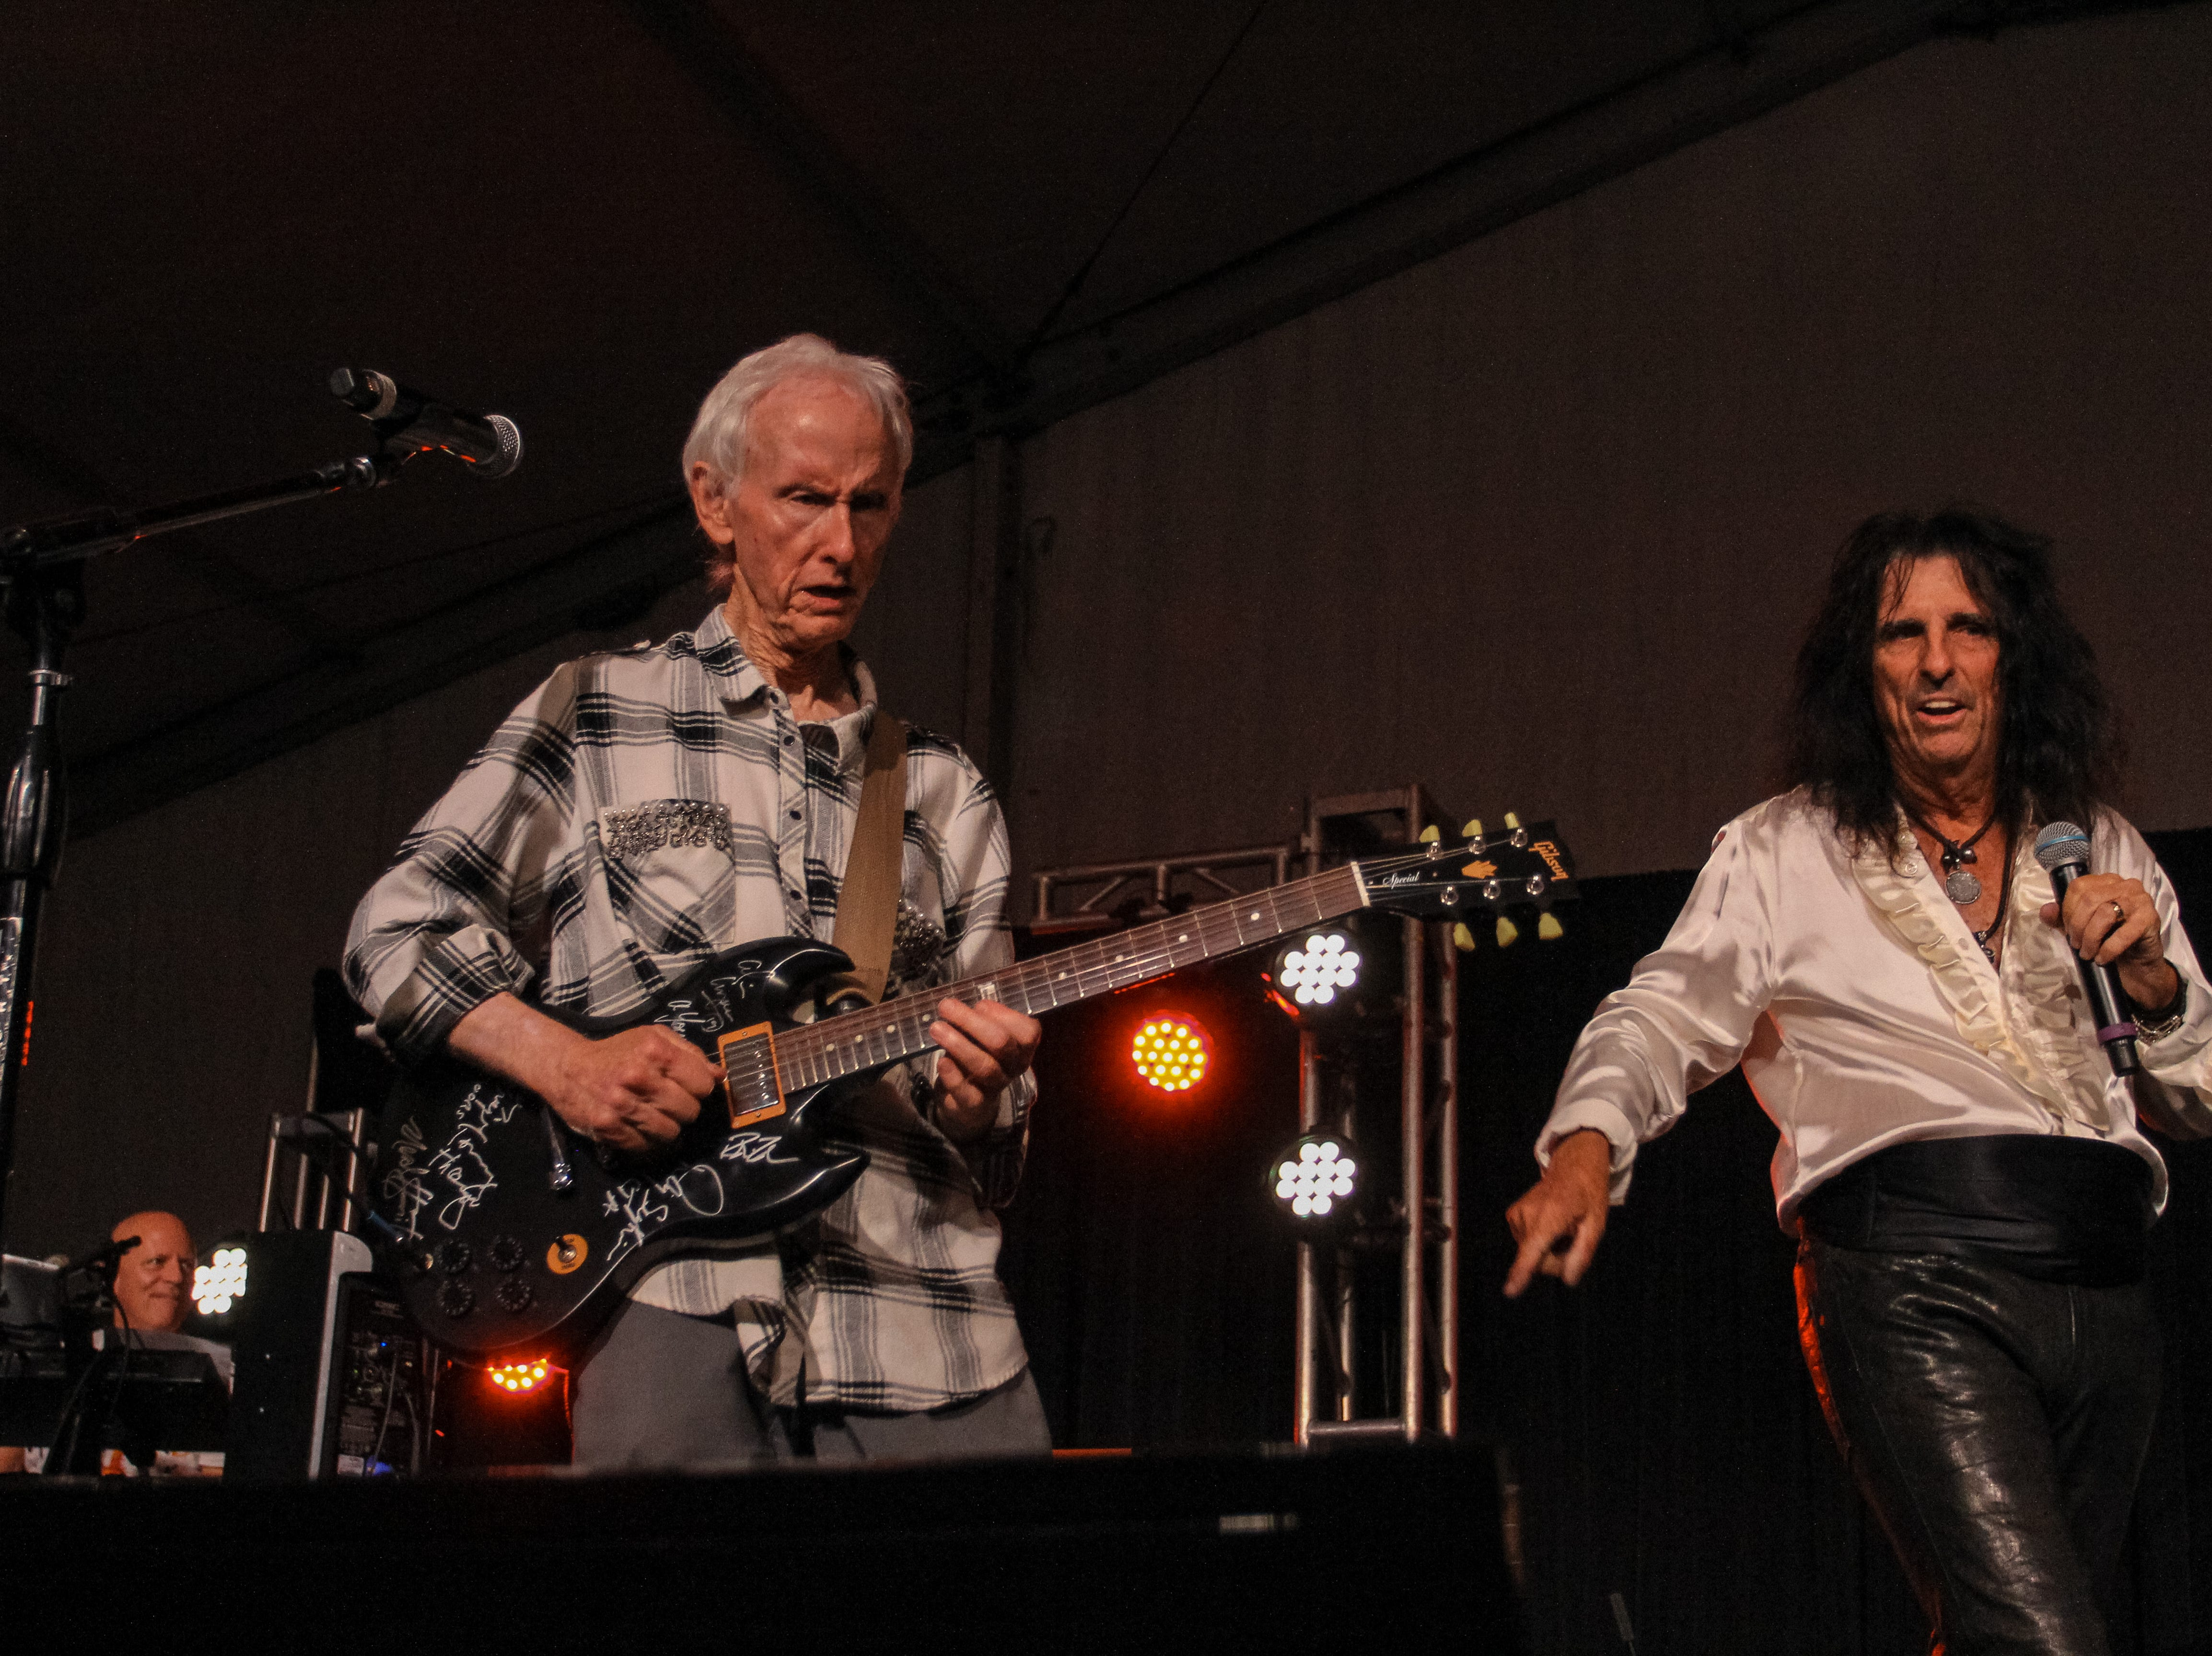 Alice Cooper and Robby Krieger of The Doors perform at Alice Cooper's Rock & Roll Fundraising Bash at the Las Sendas Golf Club in Mesa on April 27, 2019.